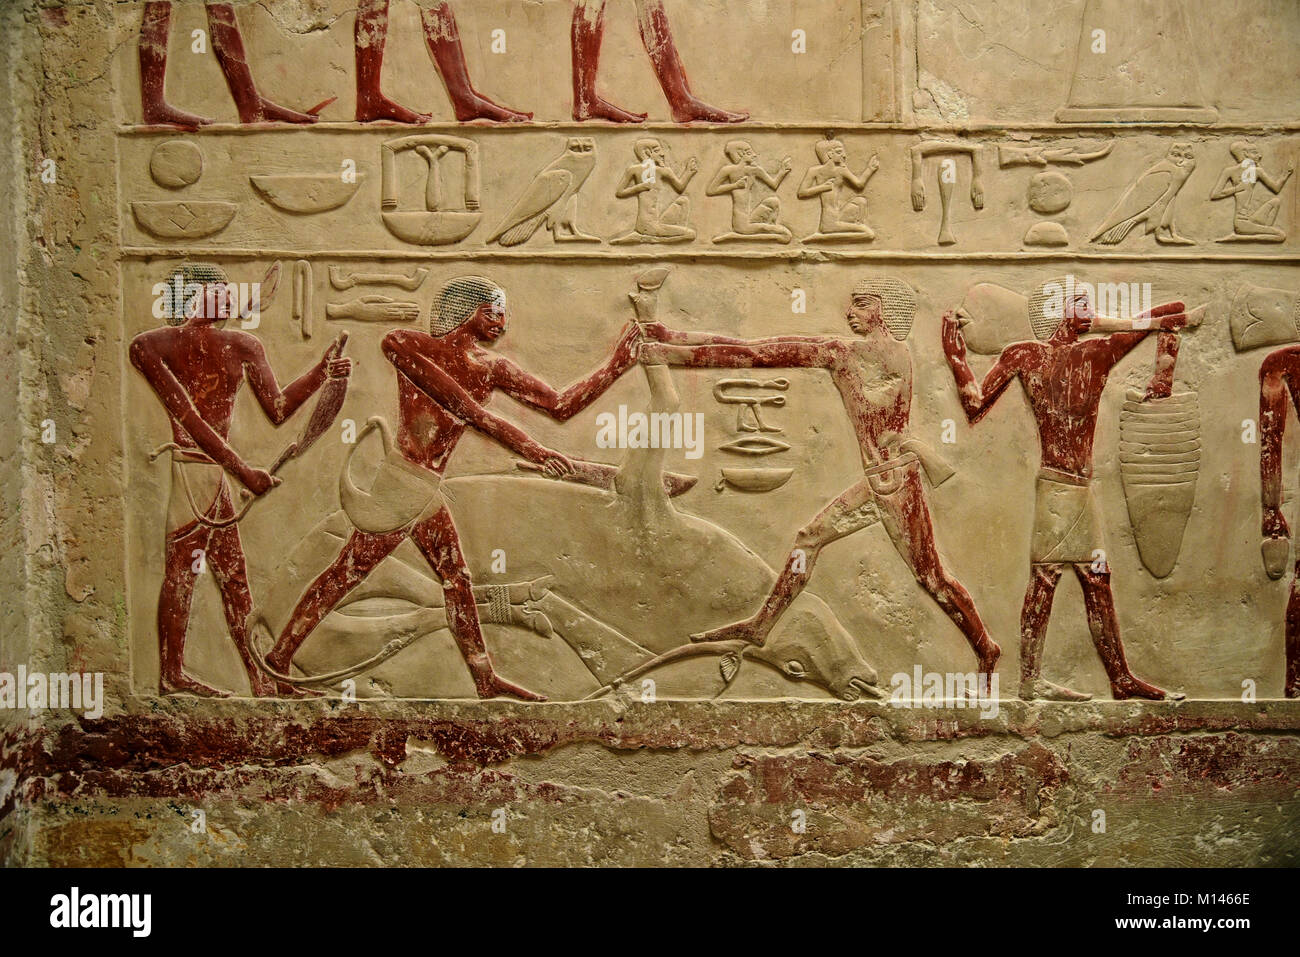 Ancient Egyptian hieroglyphic wall murals depicting lifestyle and